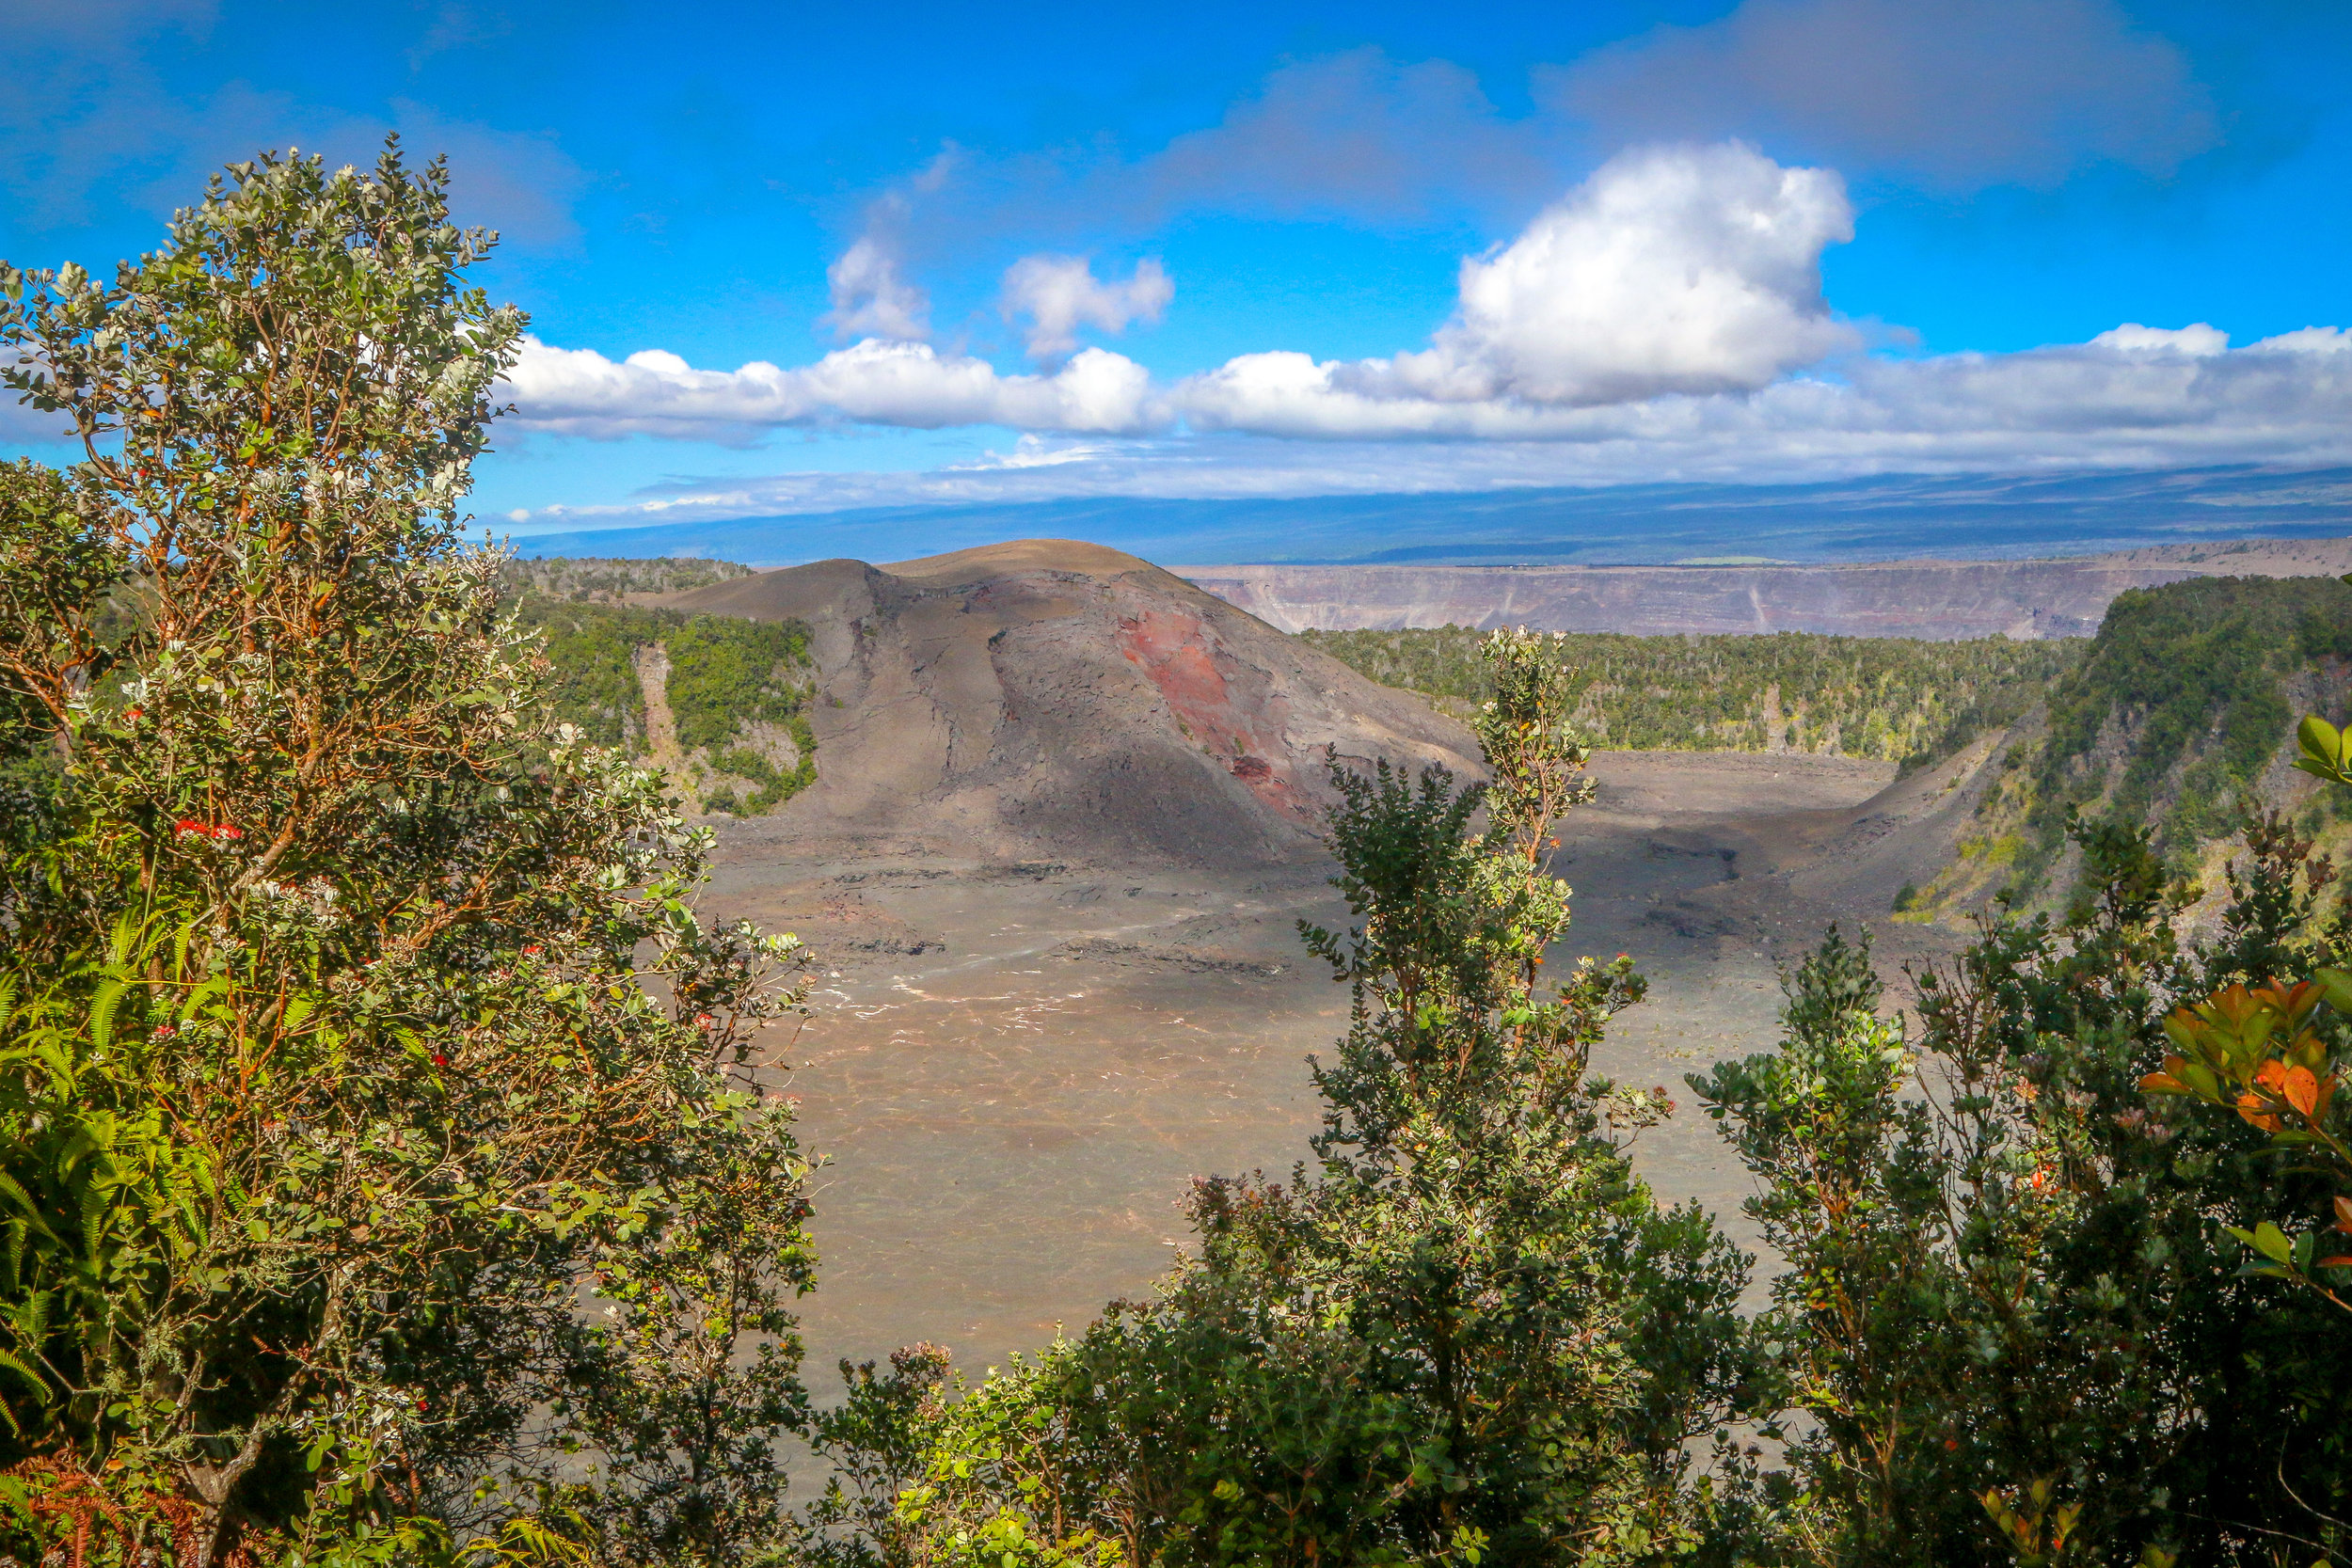 Kilauea Crater From Above